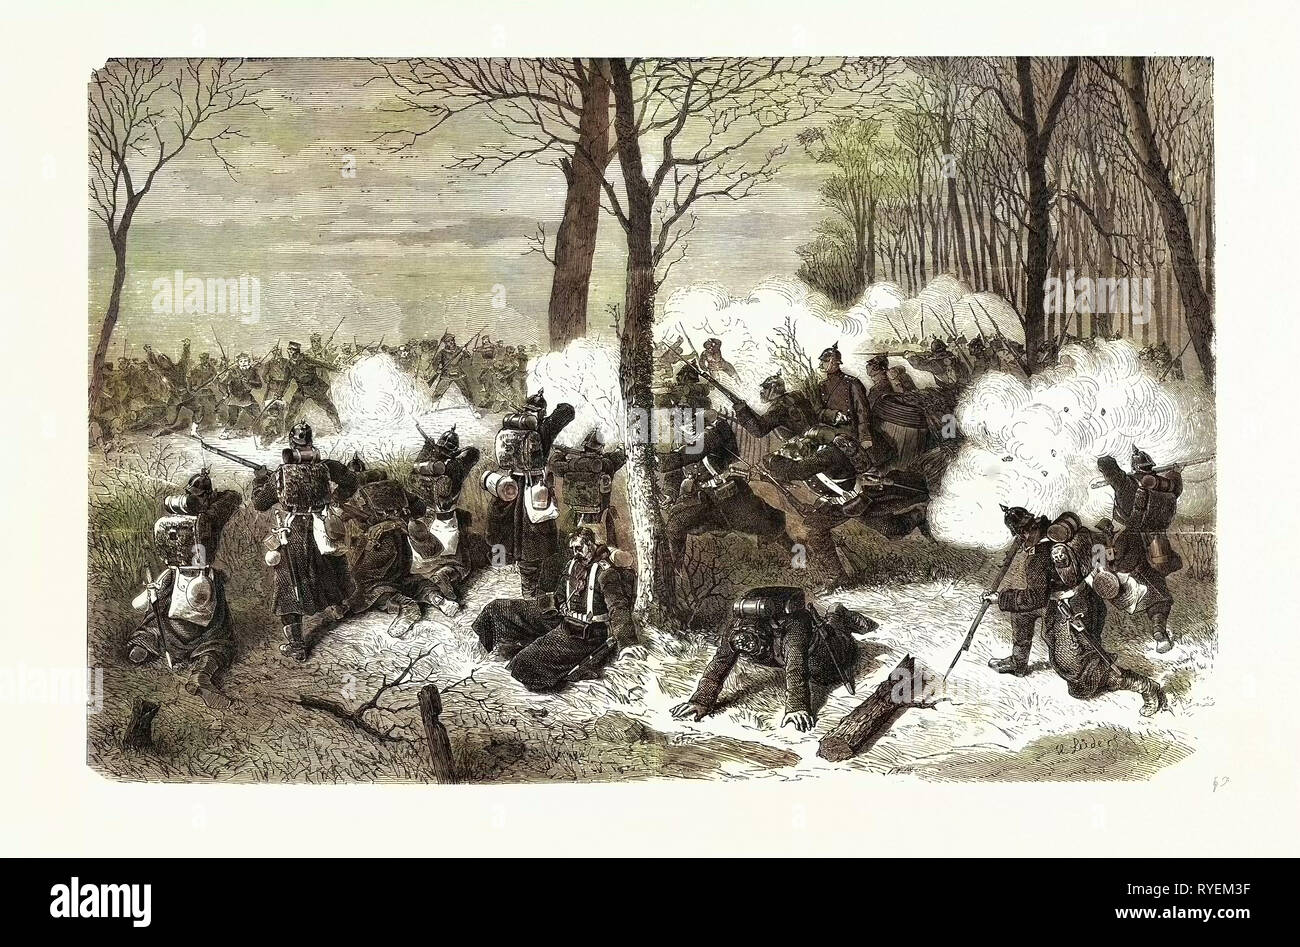 Franco-Prussian War: Bourget Defence by French Sailors on 24 December 1870 - Stock Image